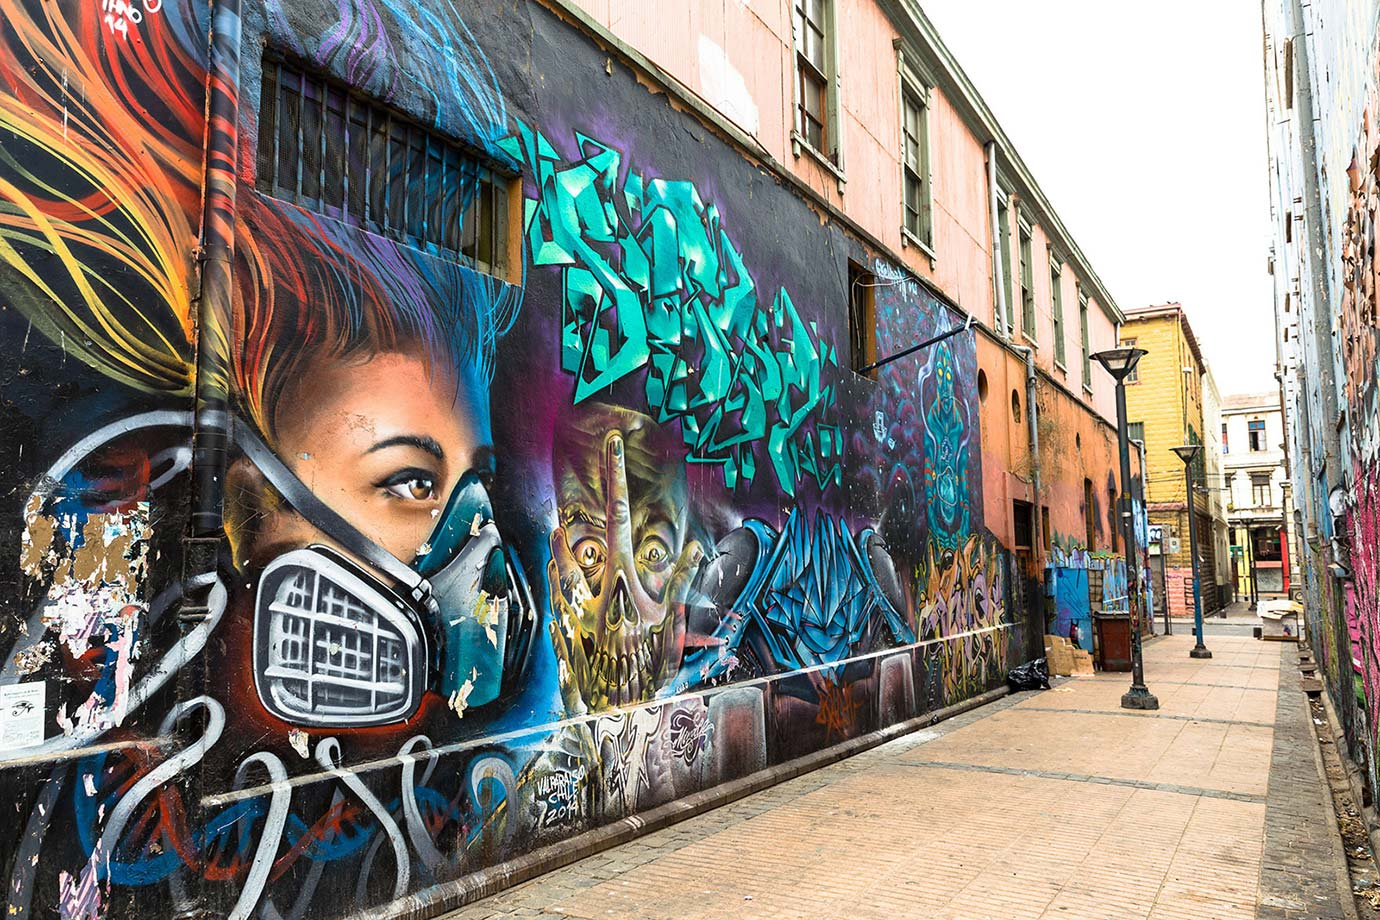 Valparaiso is a city of graffiti and murals